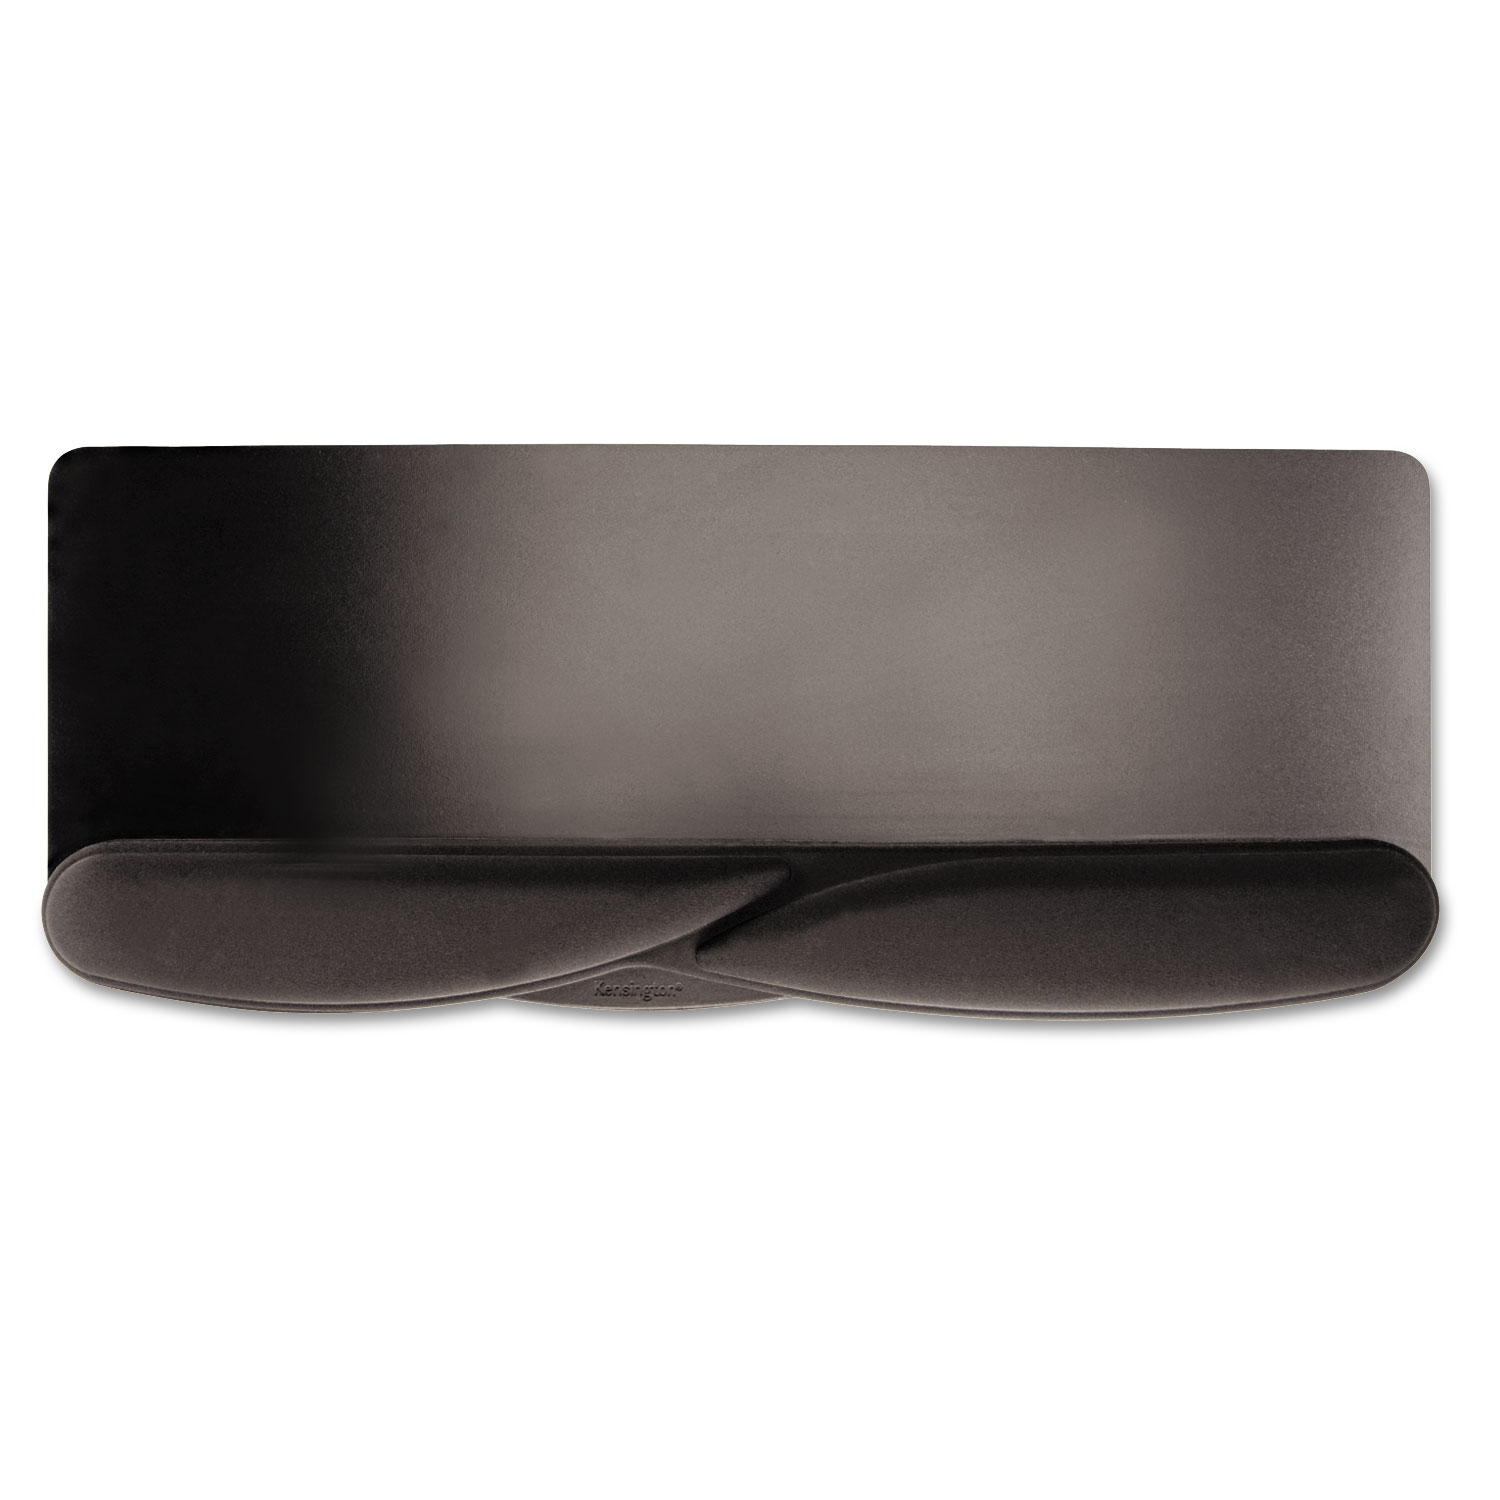 Wrist Pillow Foam Extended Keyboard Platform Wrist Rest, Black